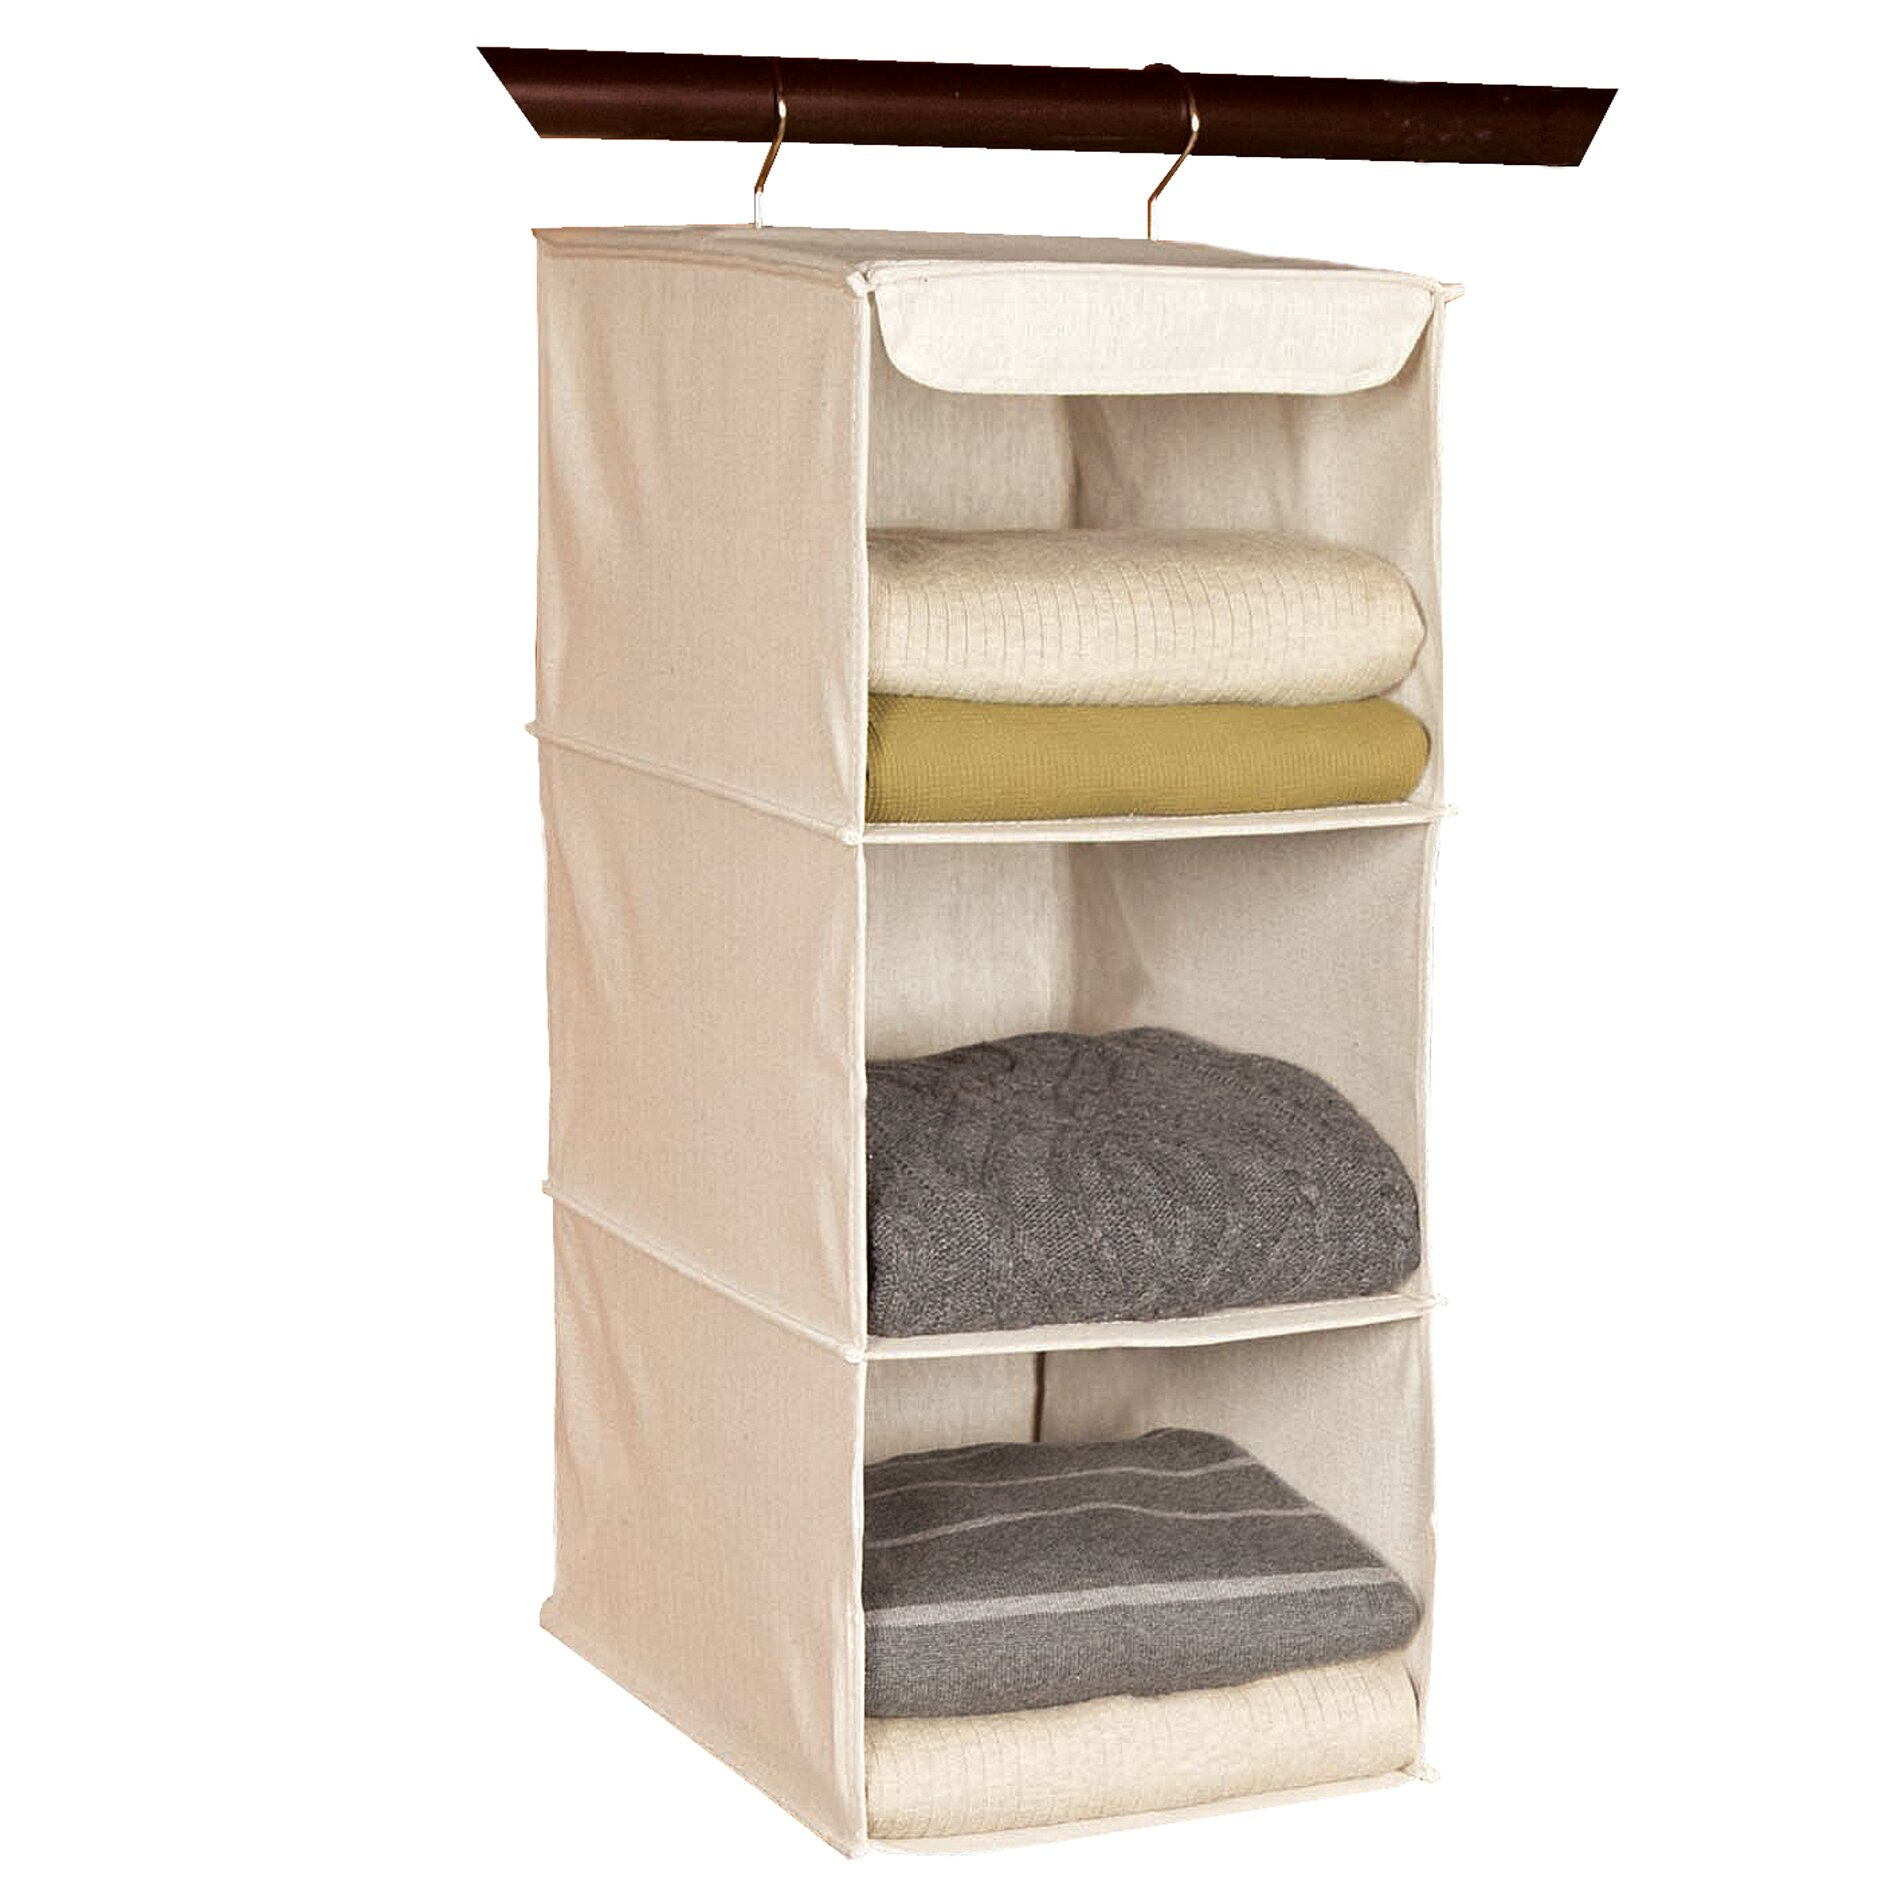 Richards Homewares Nature Of Storage 3 Compartment Hanging Organizer